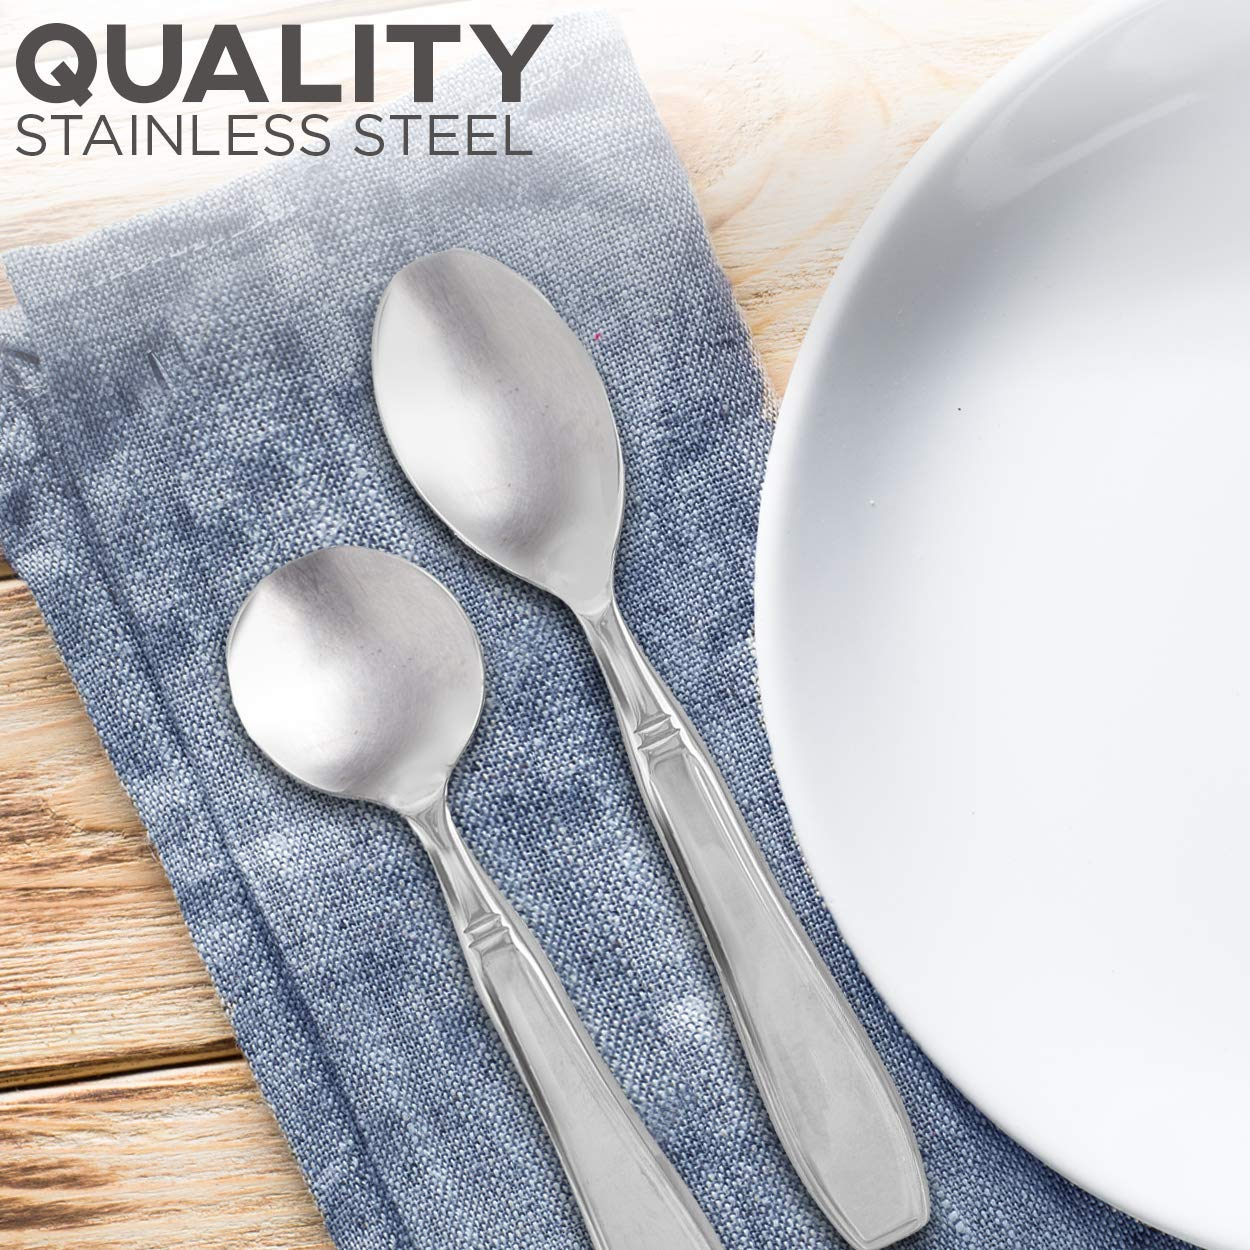 Linelax Weighted Utensils for Tremors and Parkinsons Patients - Heavy Weight Steel Silverware Set of Knife, Fork, Teaspoon and Soup Spoon - Adaptive Eating Flatware Helps Hand Tremor, Parkinson, Arthr by Linelax (Image #5)